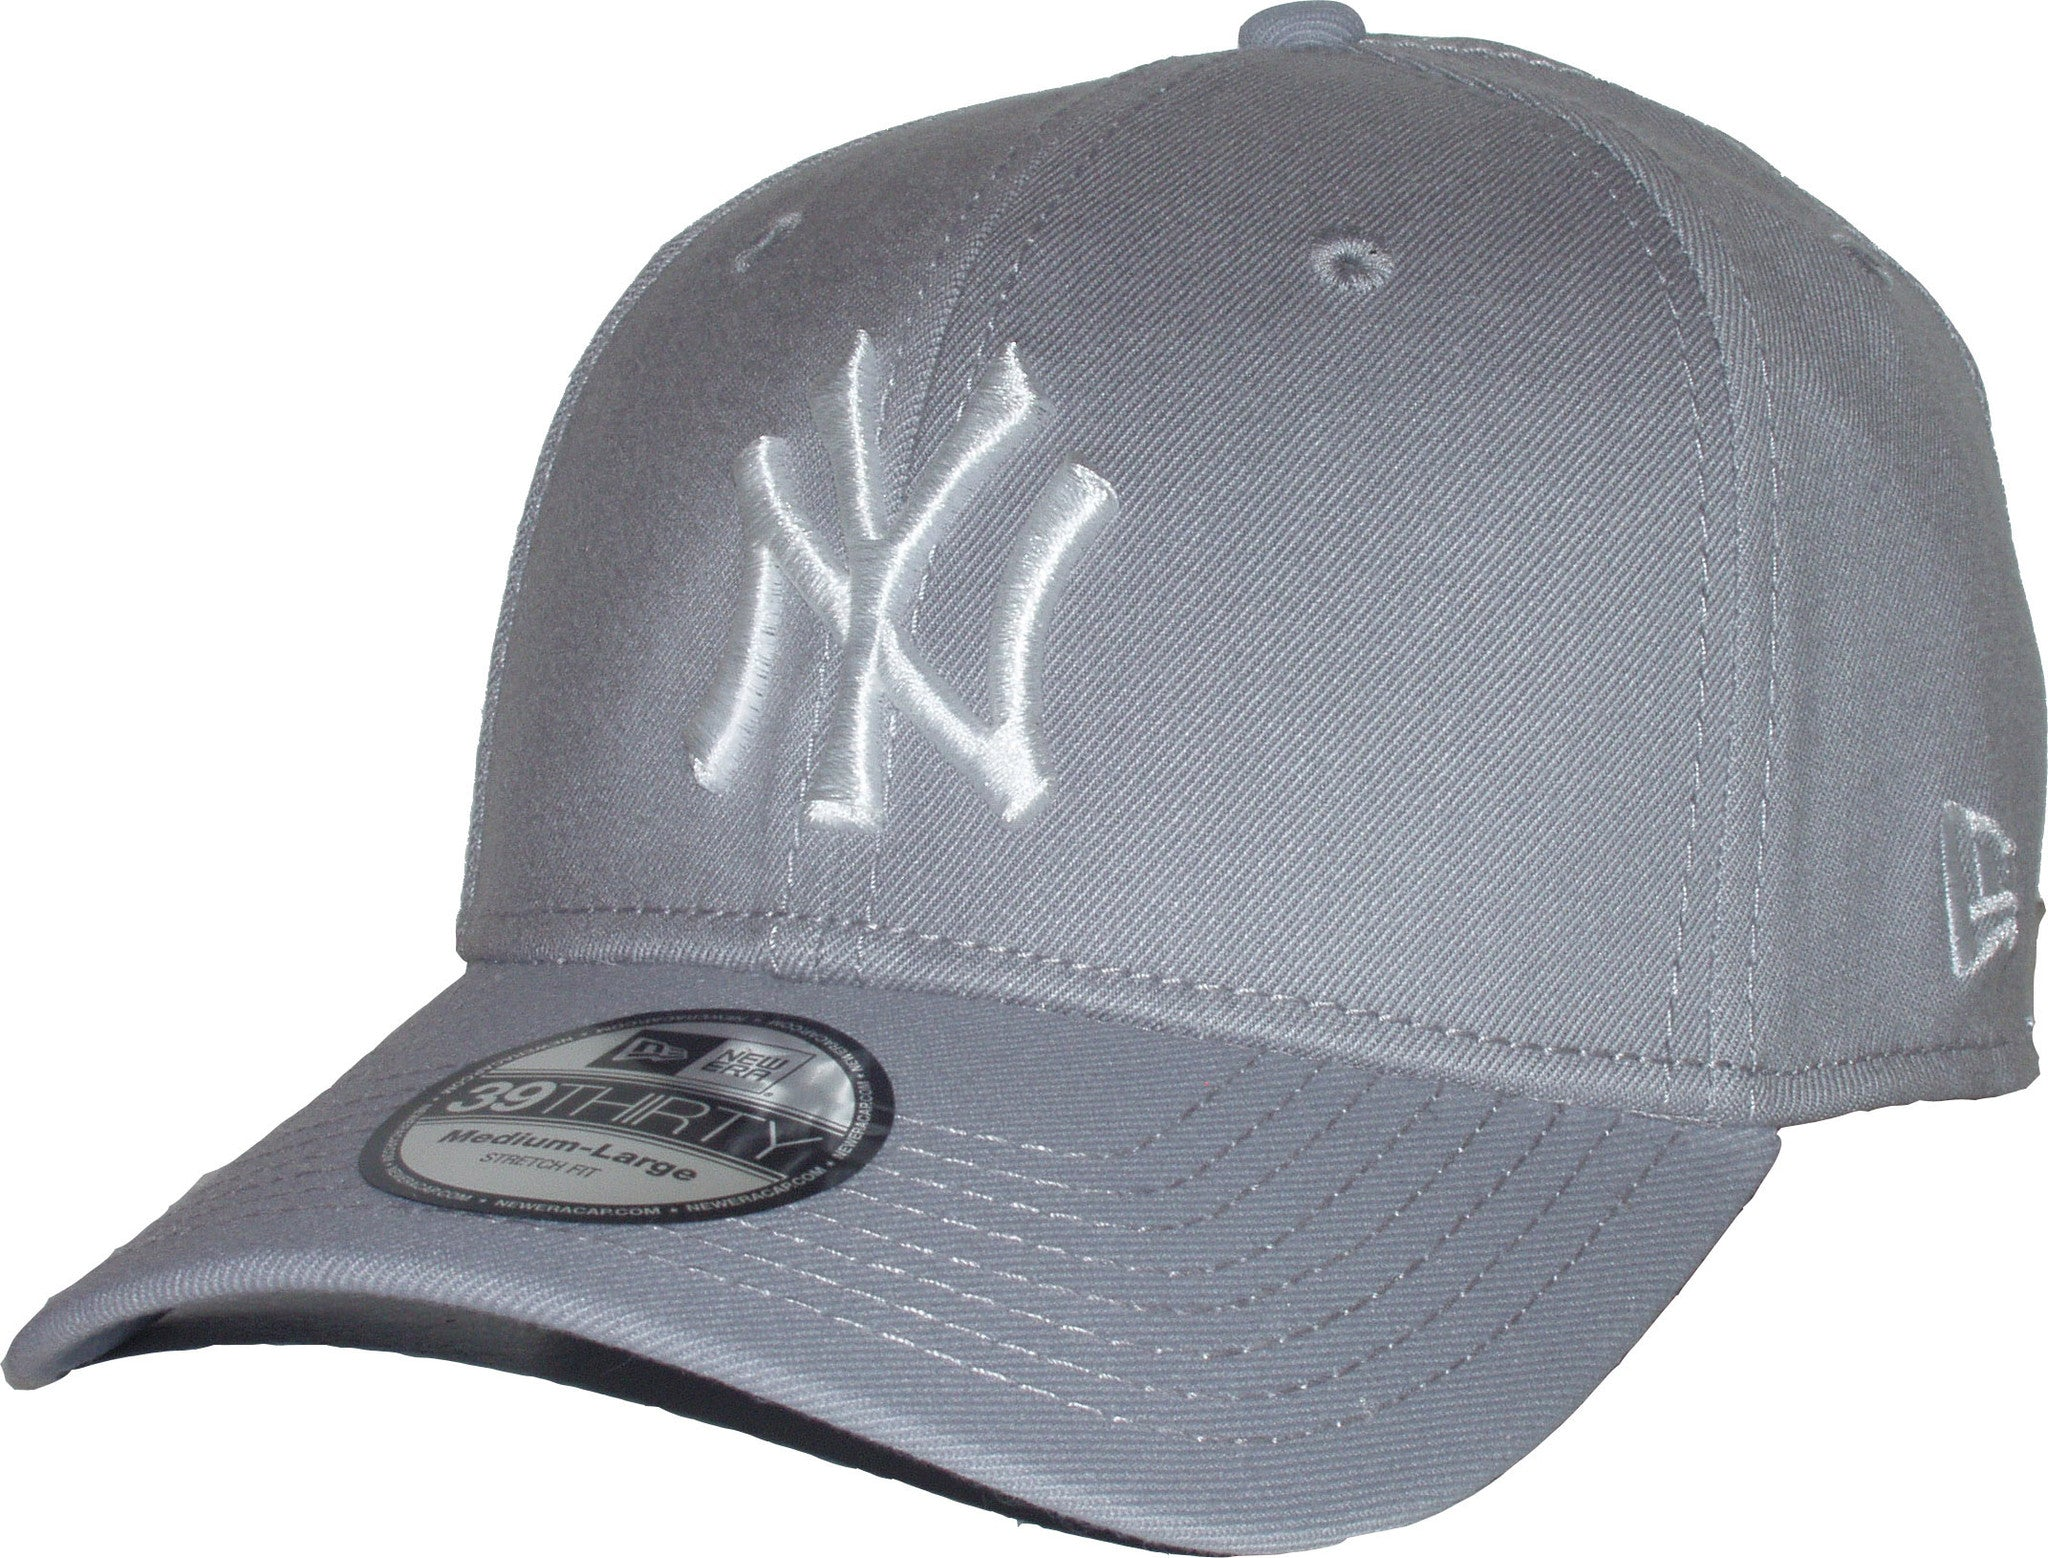 eba27fce7a7 New Era 3930 League Basic NY Yankees Stretch Fit Baseball Cap - Grey White  ...